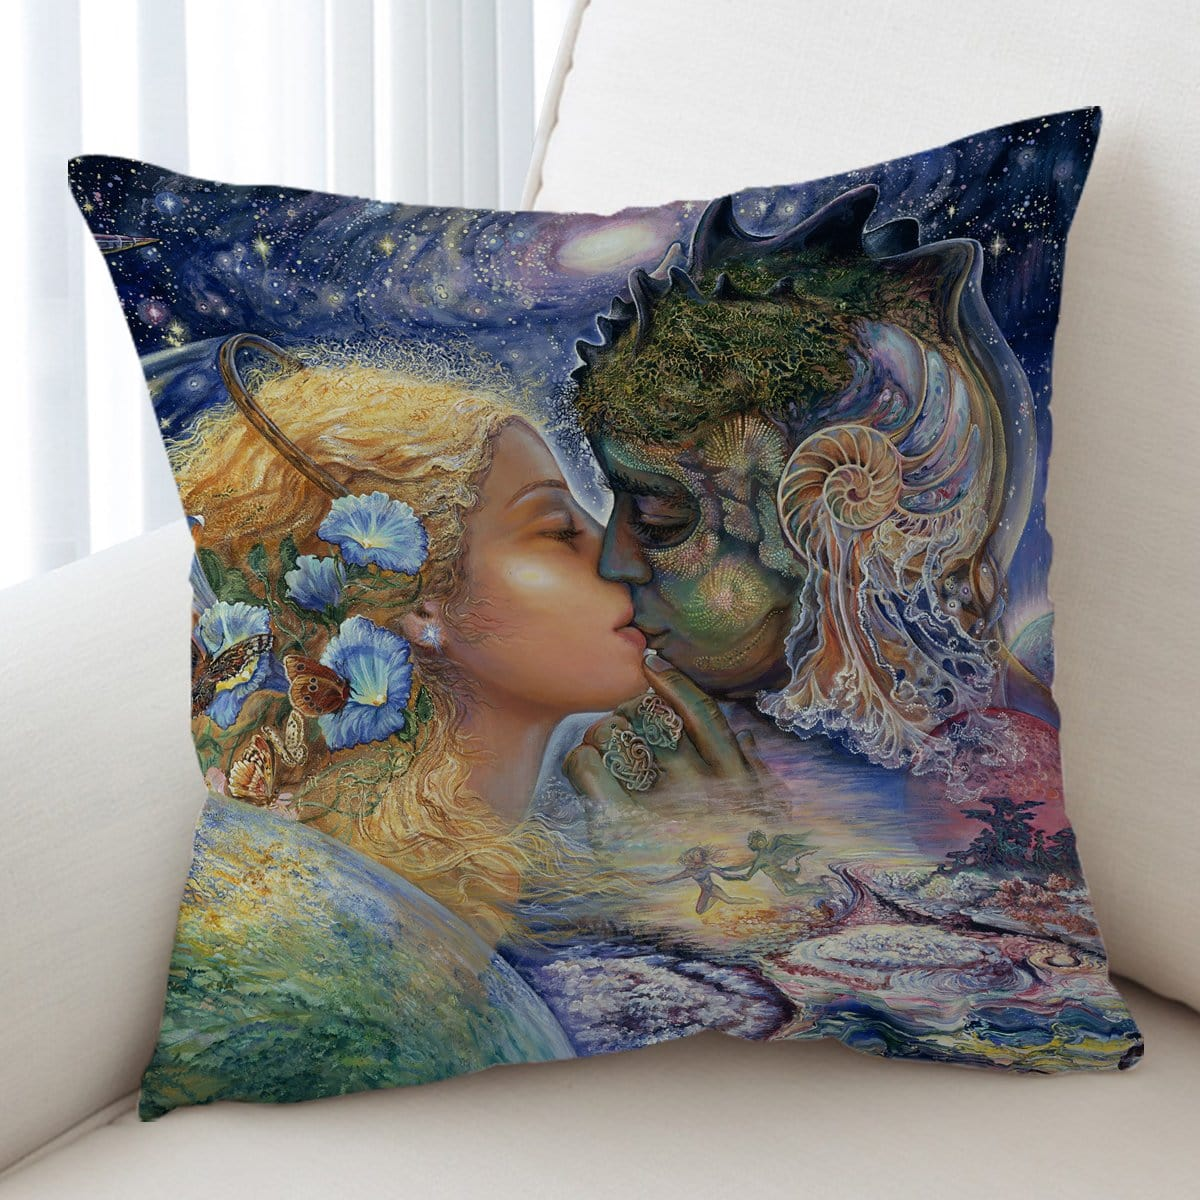 Cosmic Kiss Cushion Cover-Josephine Wall-Little Squiffy